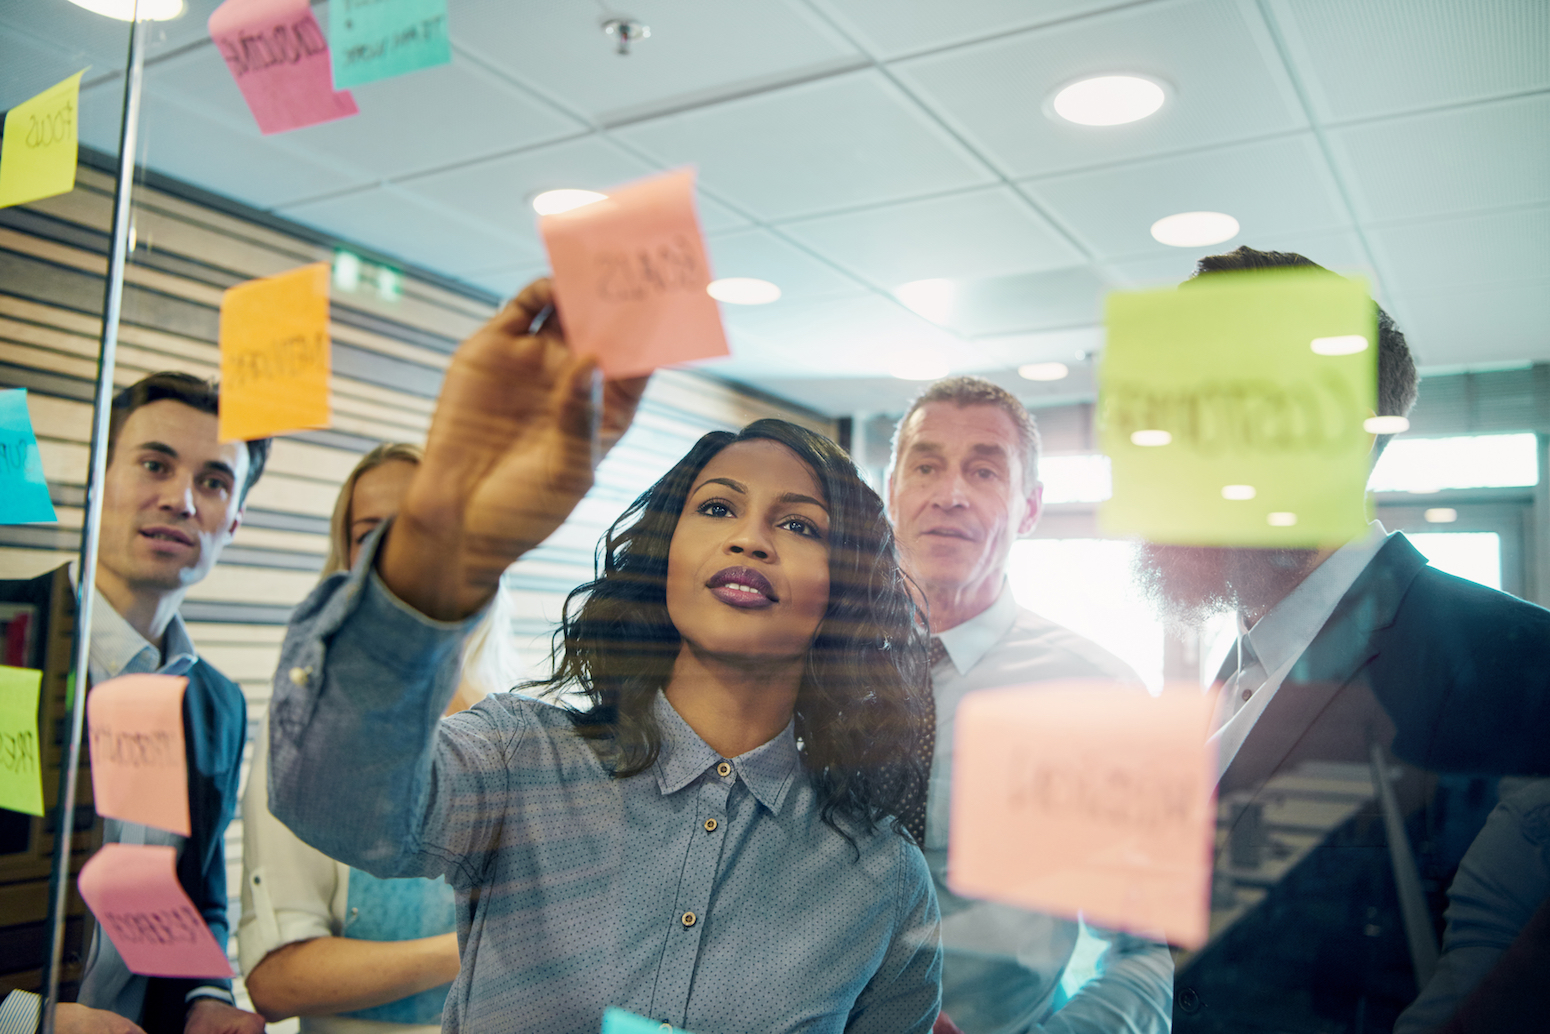 Young professional demonstrating strategy via post it notes.